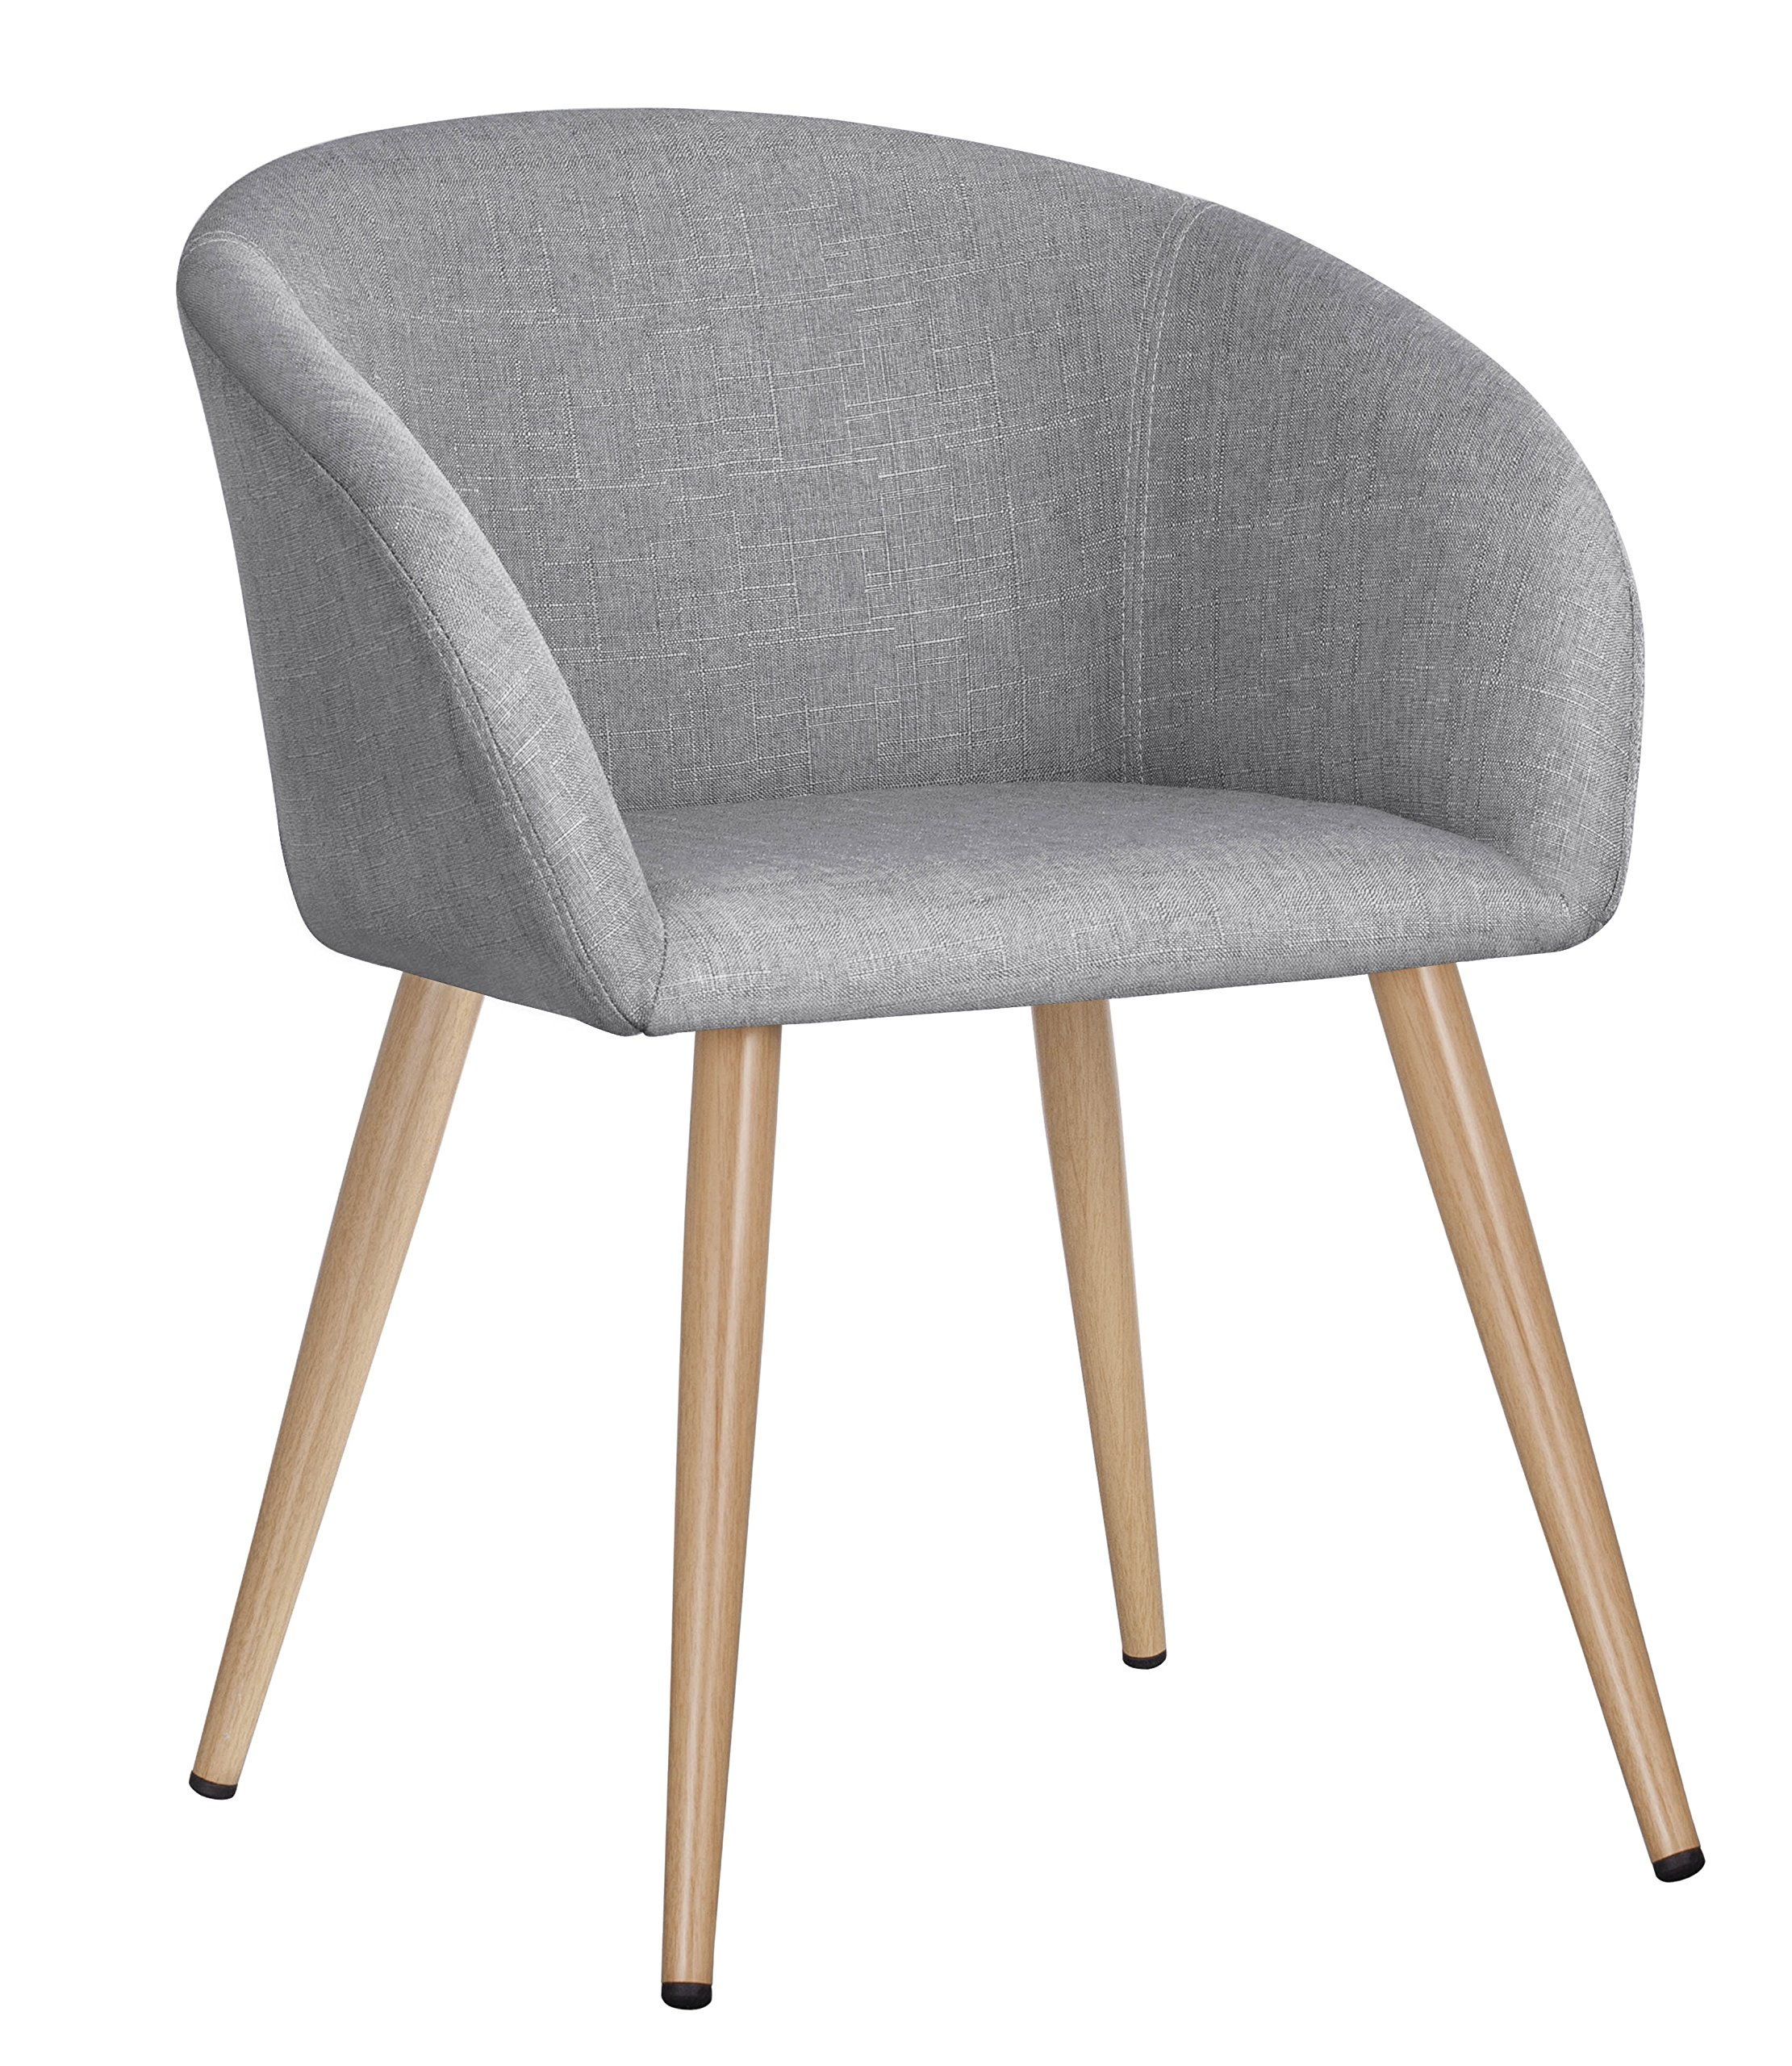 Duhome Fabric Home Office Leisure Accent Chair Living Room Reception Side Chair with Armrest (Grey)